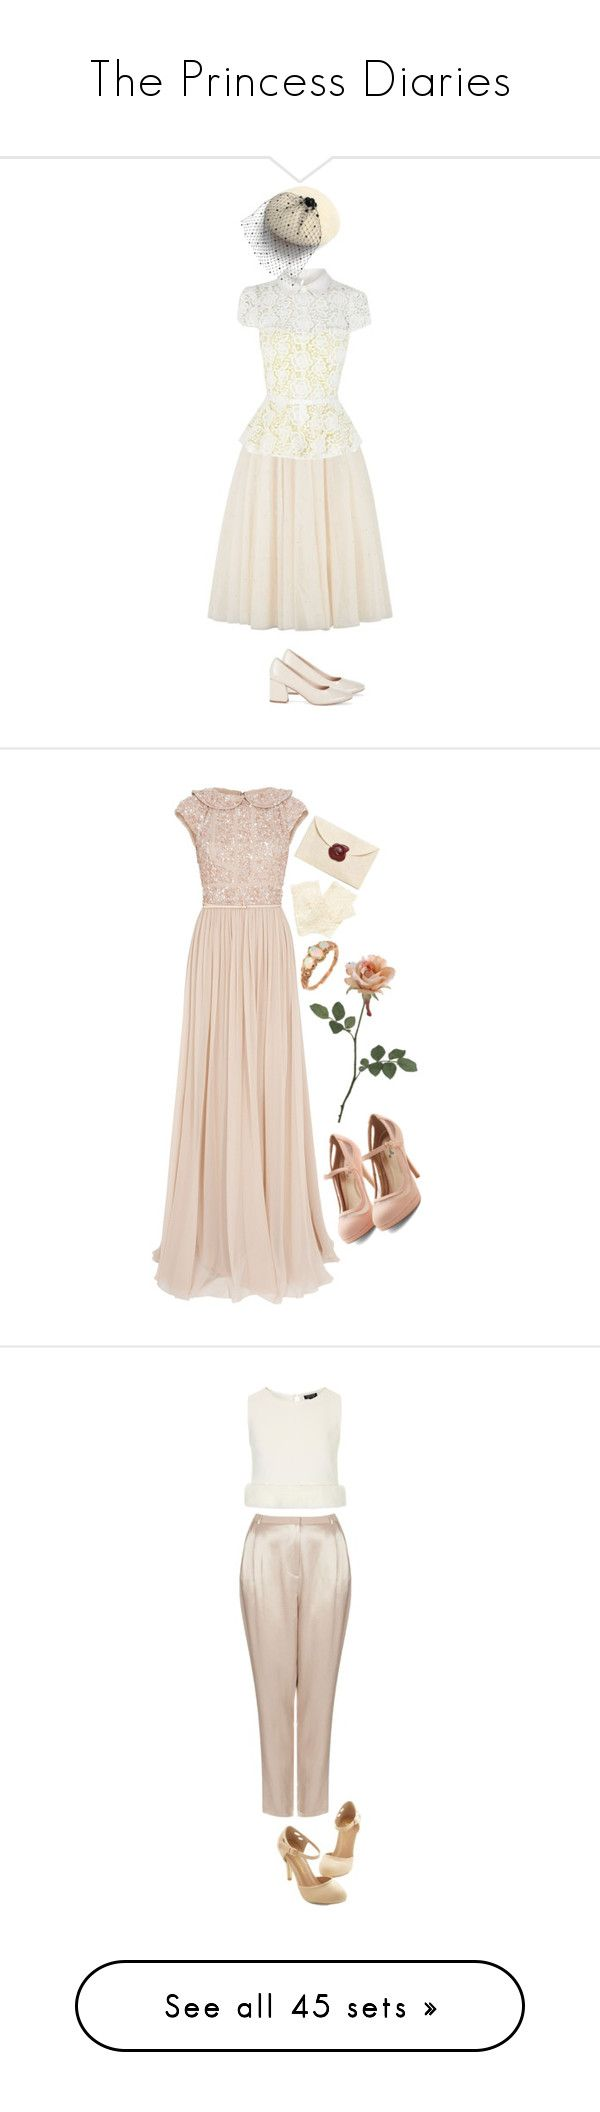 """""""The Princess Diaries"""" by patpotato ❤ liked on Polyvore featuring Ted Baker, Karen Millen, Anne-Sophie Coulot, Sole Society, Elie Saab, Accessorize, Trilogy, Topshop, Miss Selfridge and New Look"""